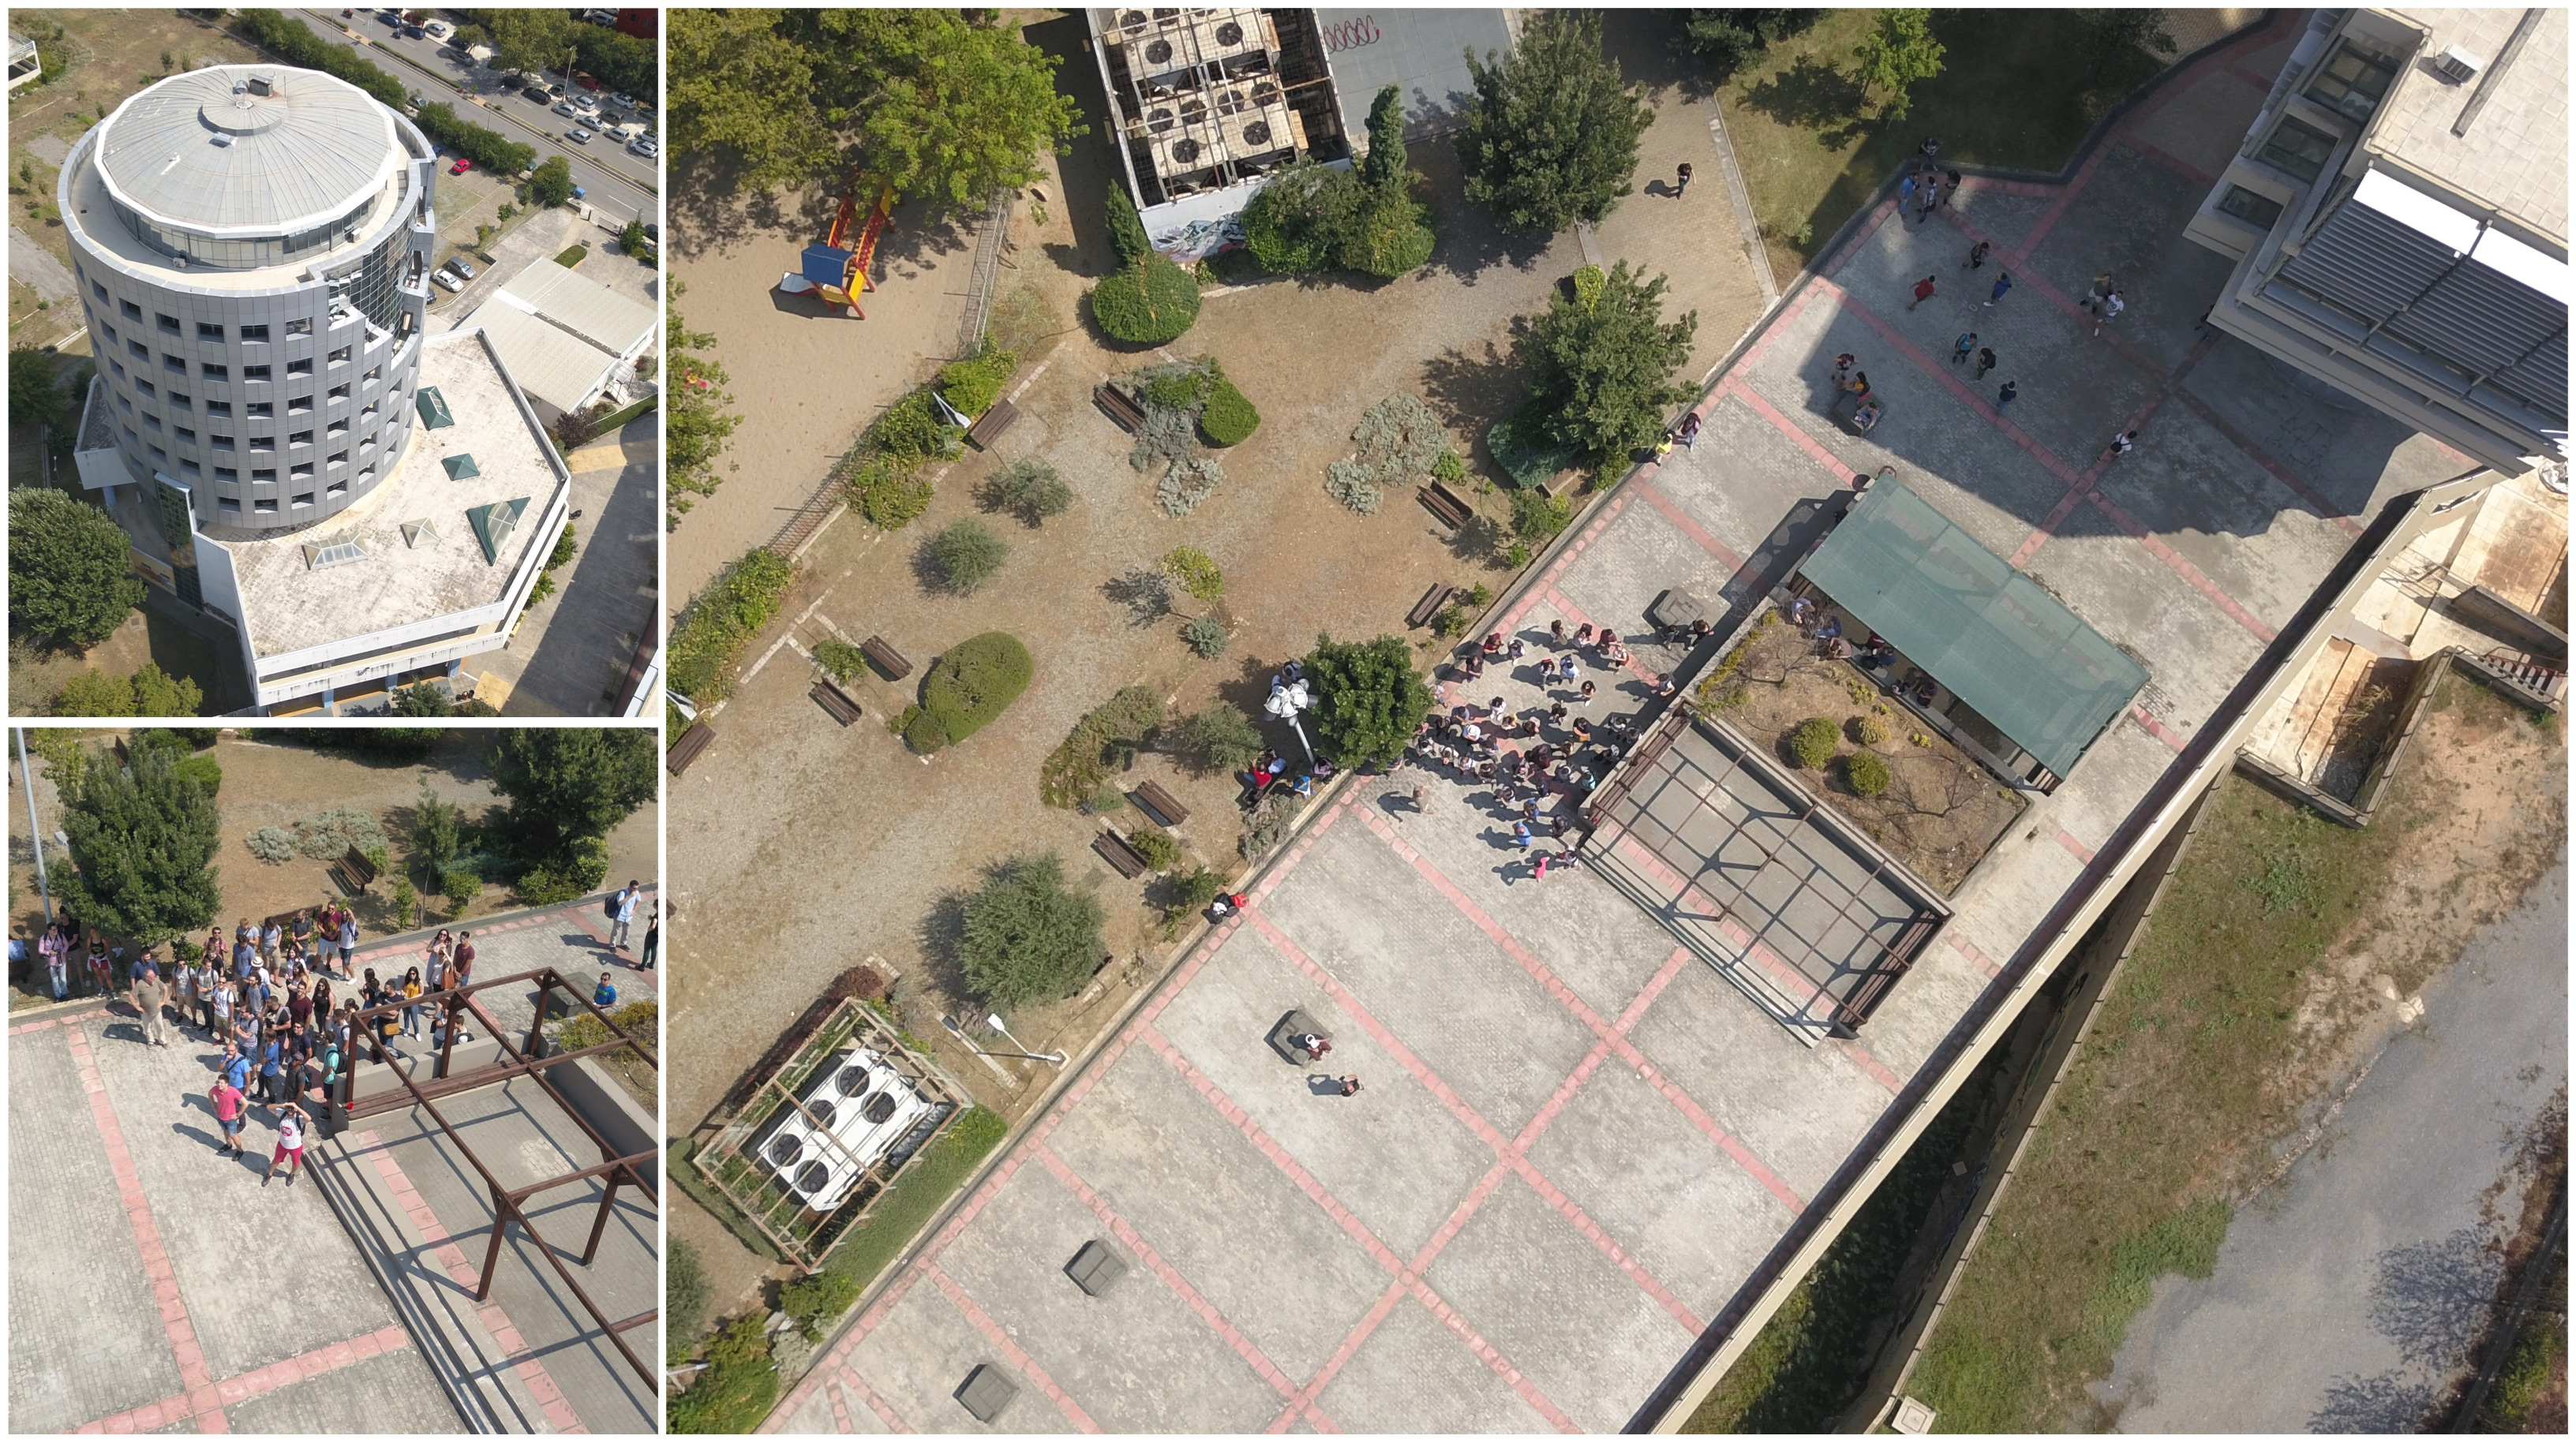 Images from the Drone Sessions with the students